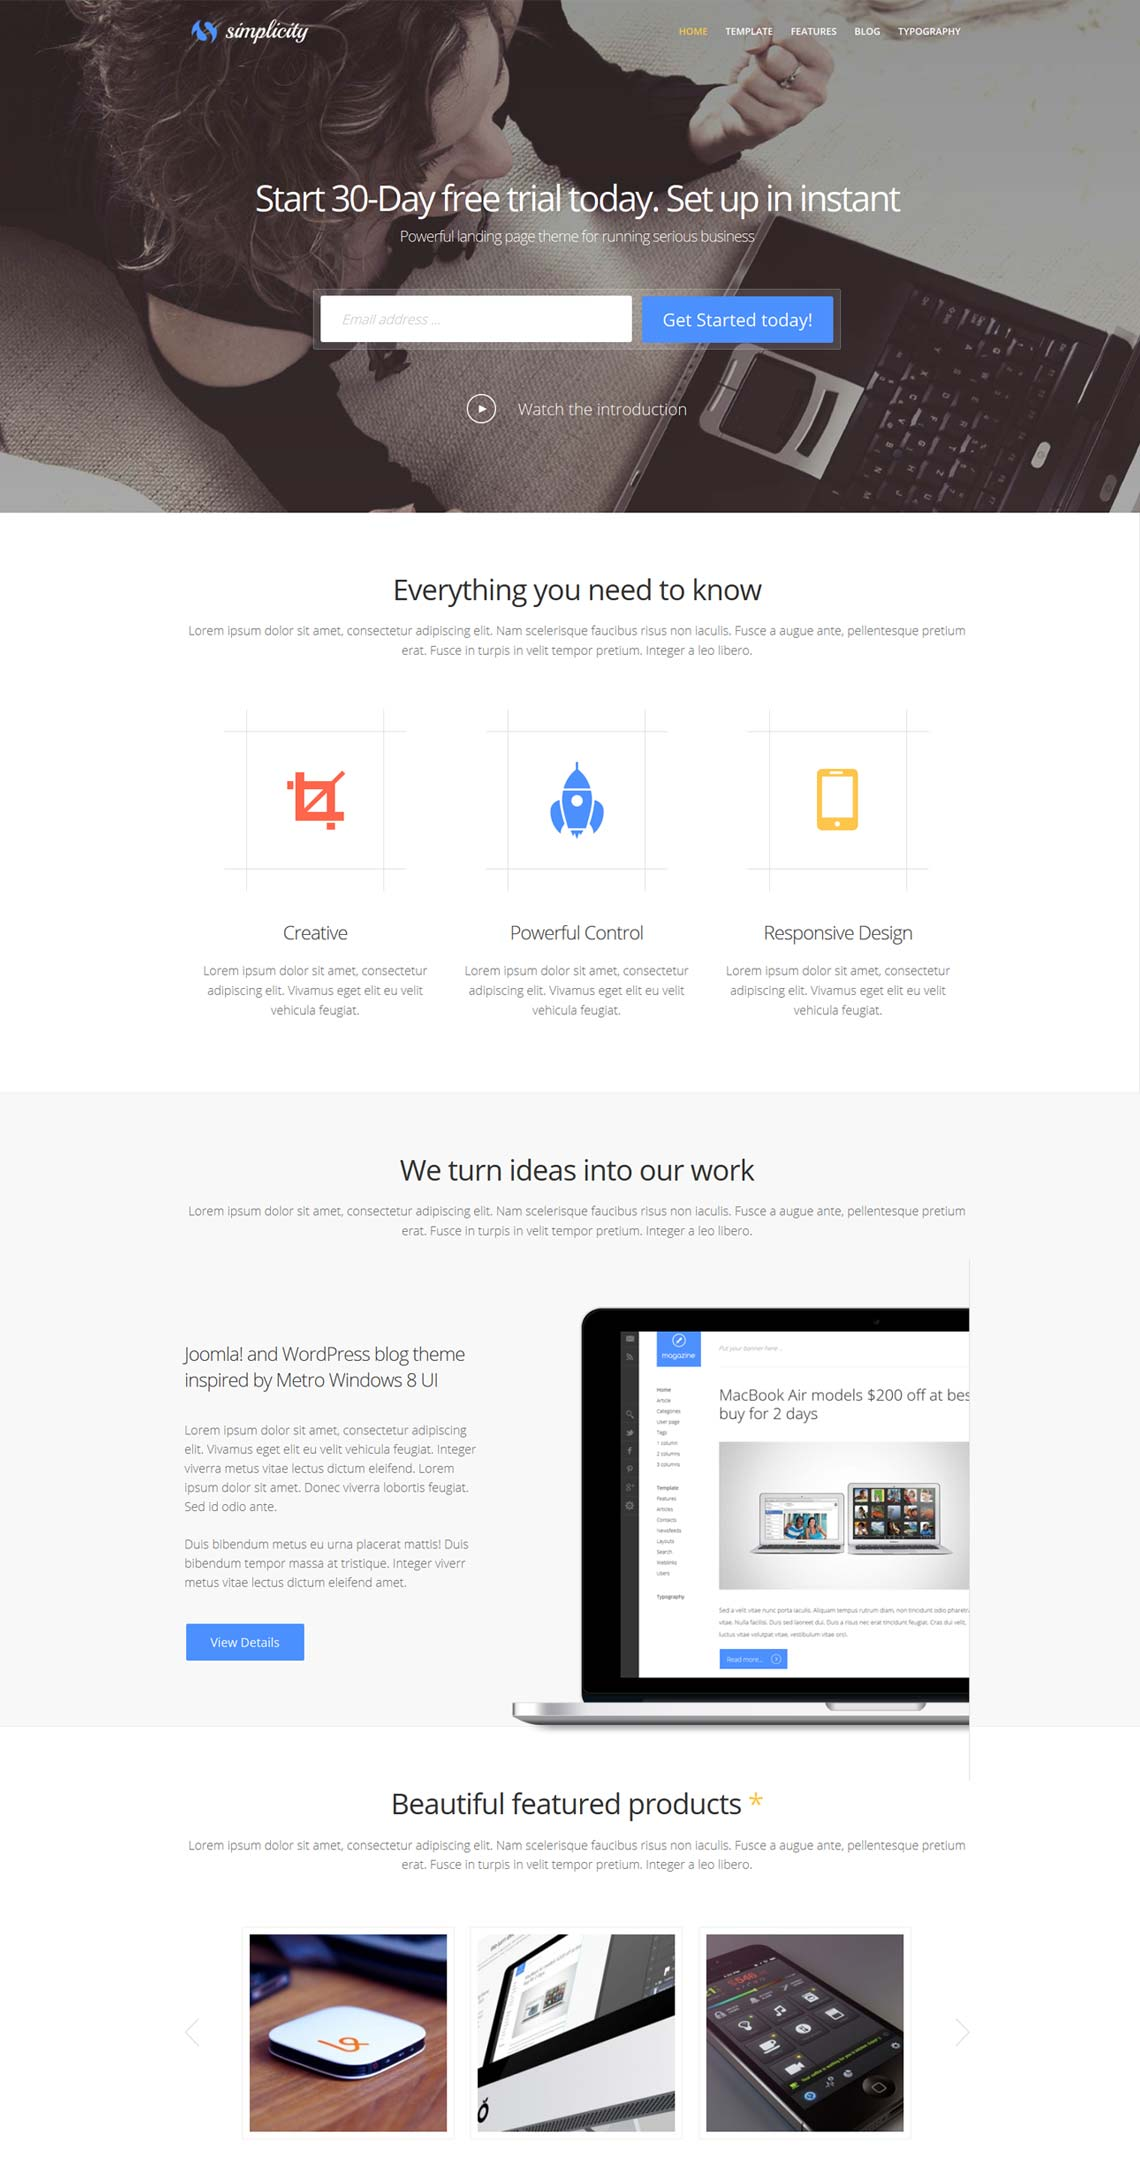 Simplicity premium wordpress theme for business with responsive simplicity business wordpress theme for startup cheaphphosting Images